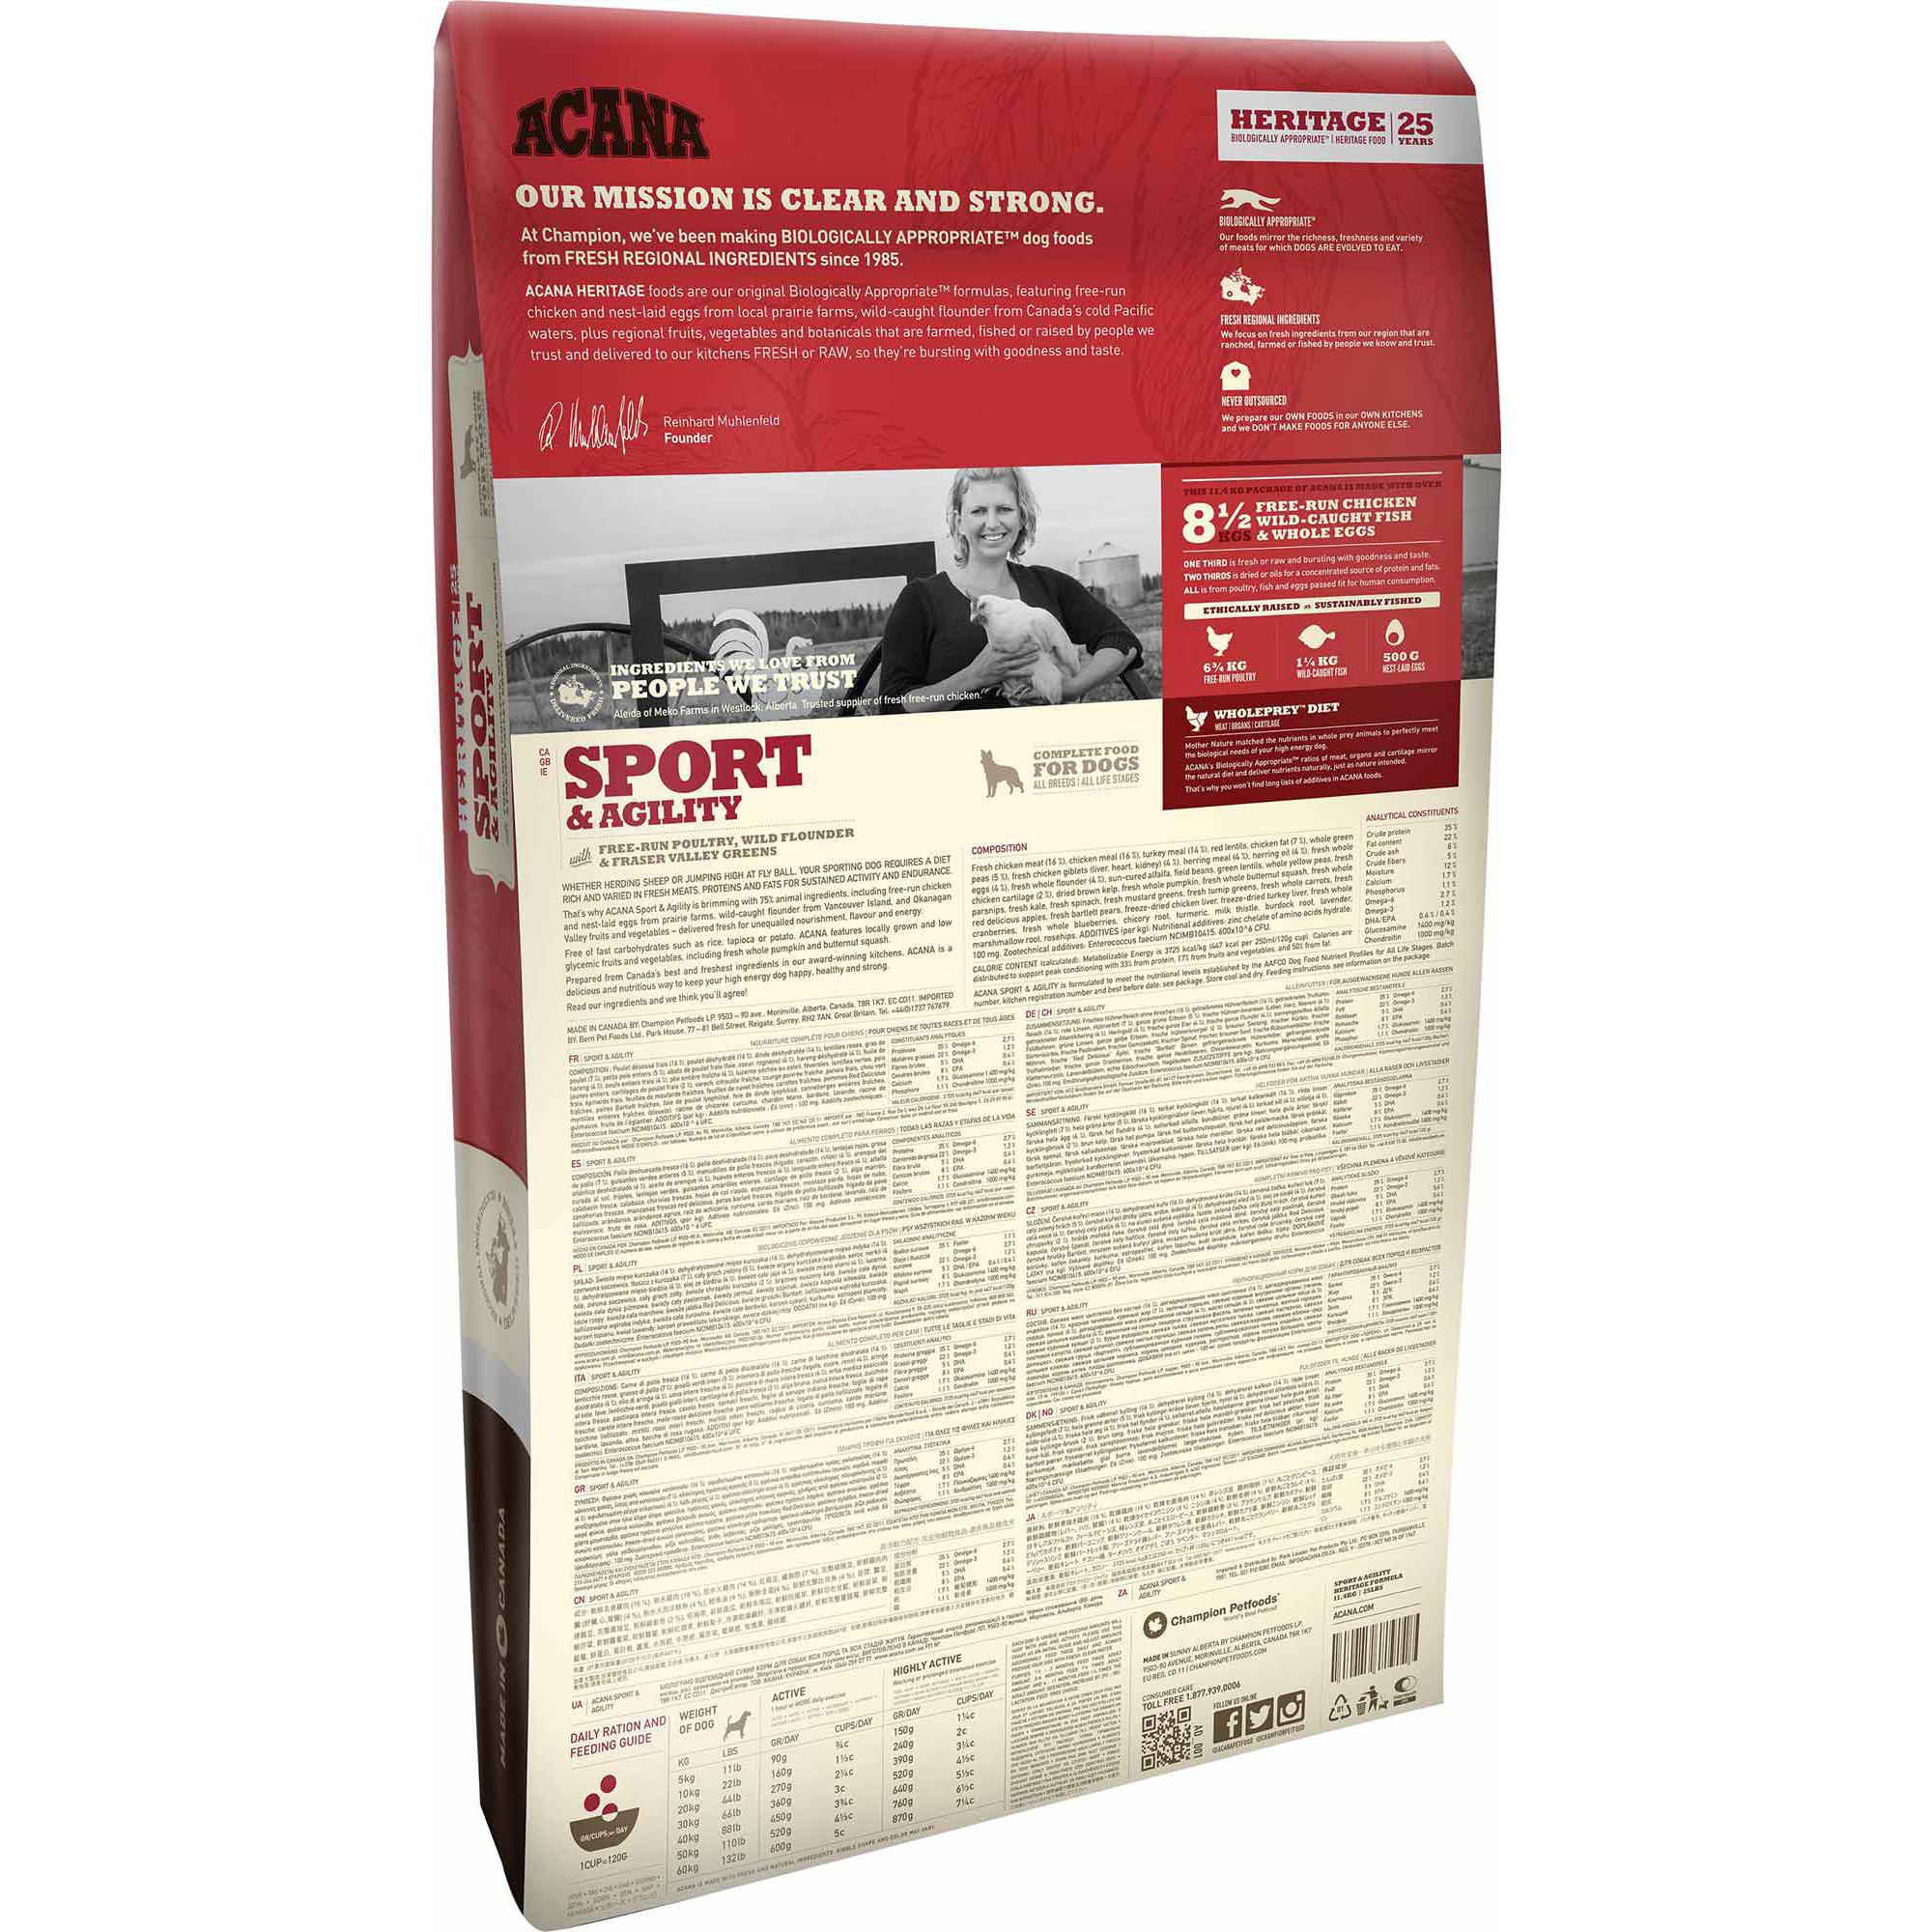 ACANA® HERITAGE Sport & Agility 11.4KG - Critter Country Supply Ltd.